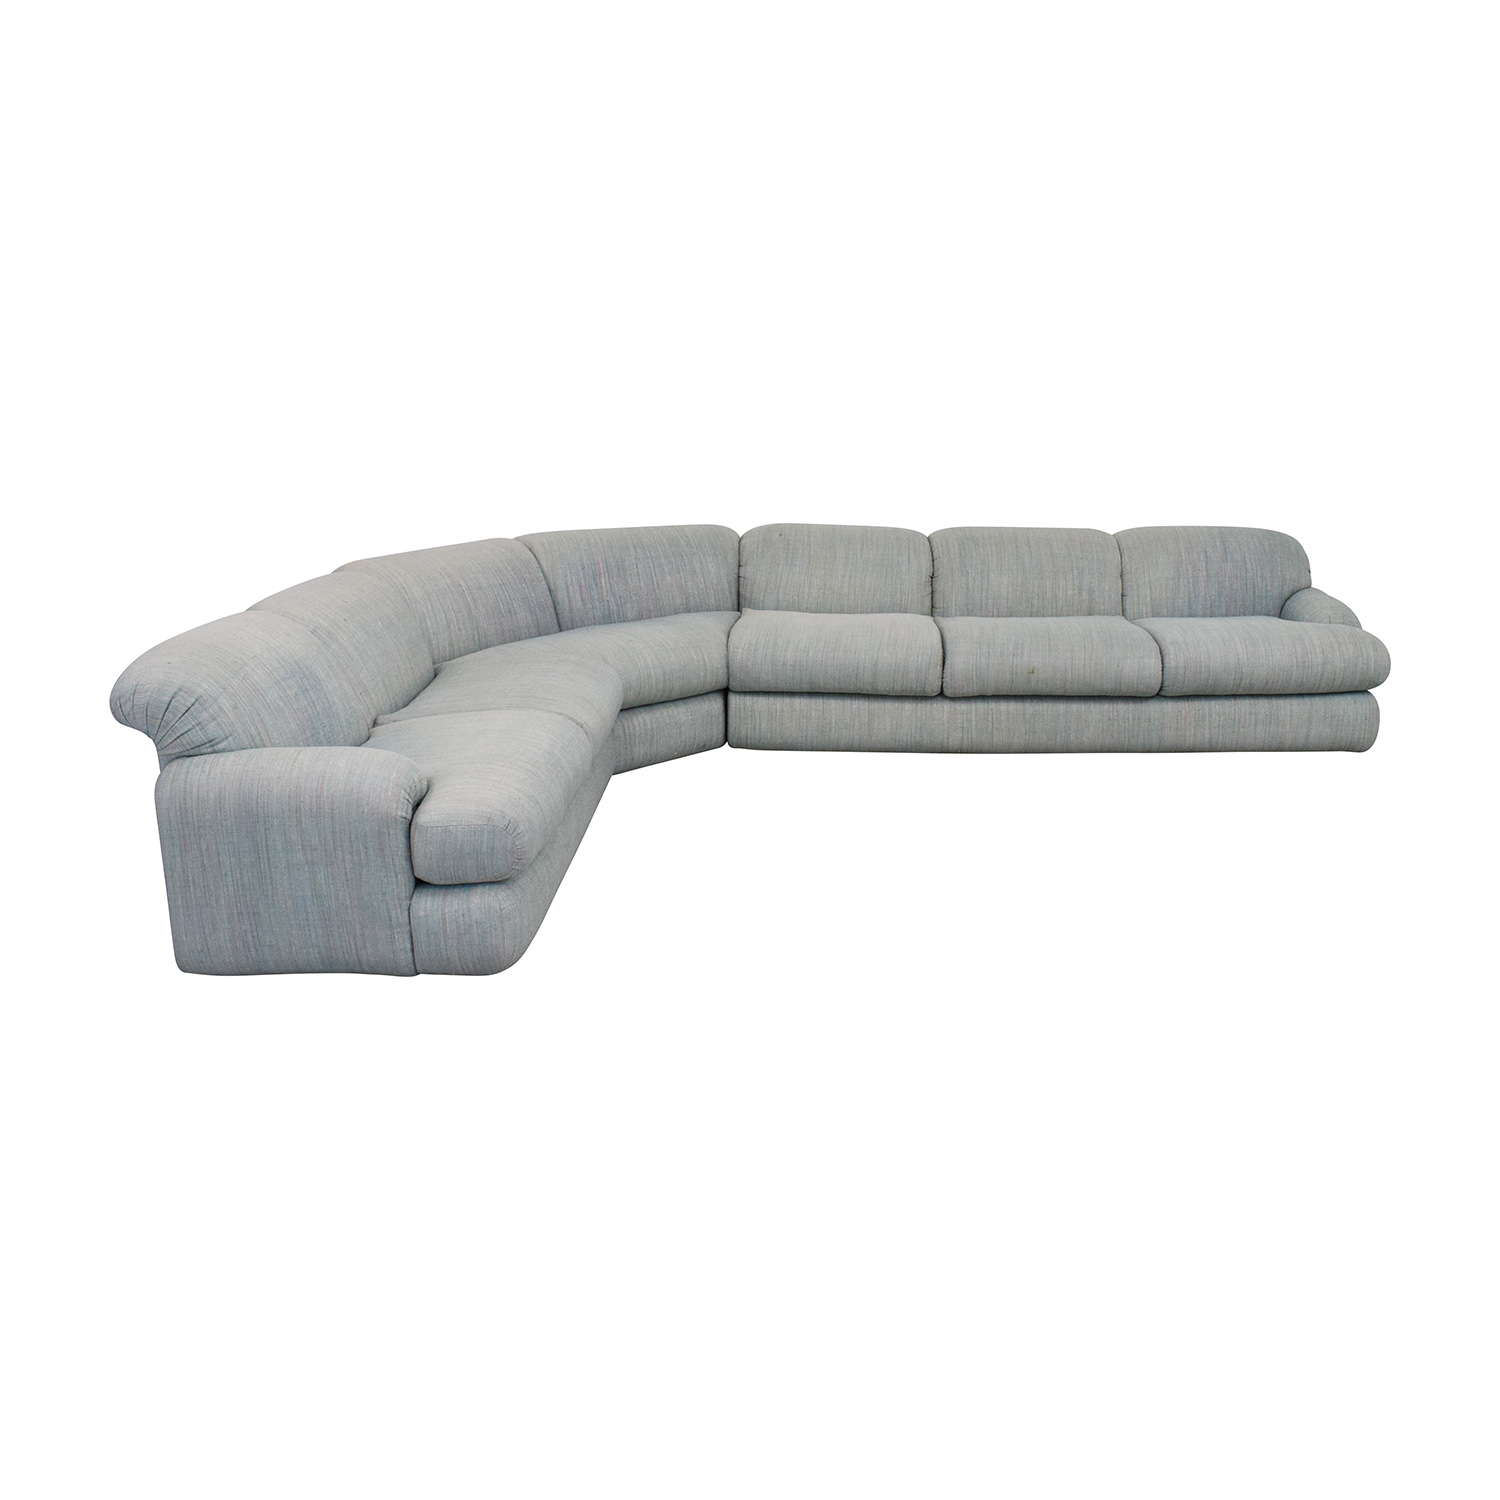 Preview Furniture Preview Furniture David L. James Curved Corner Sectional Sofa dimensions